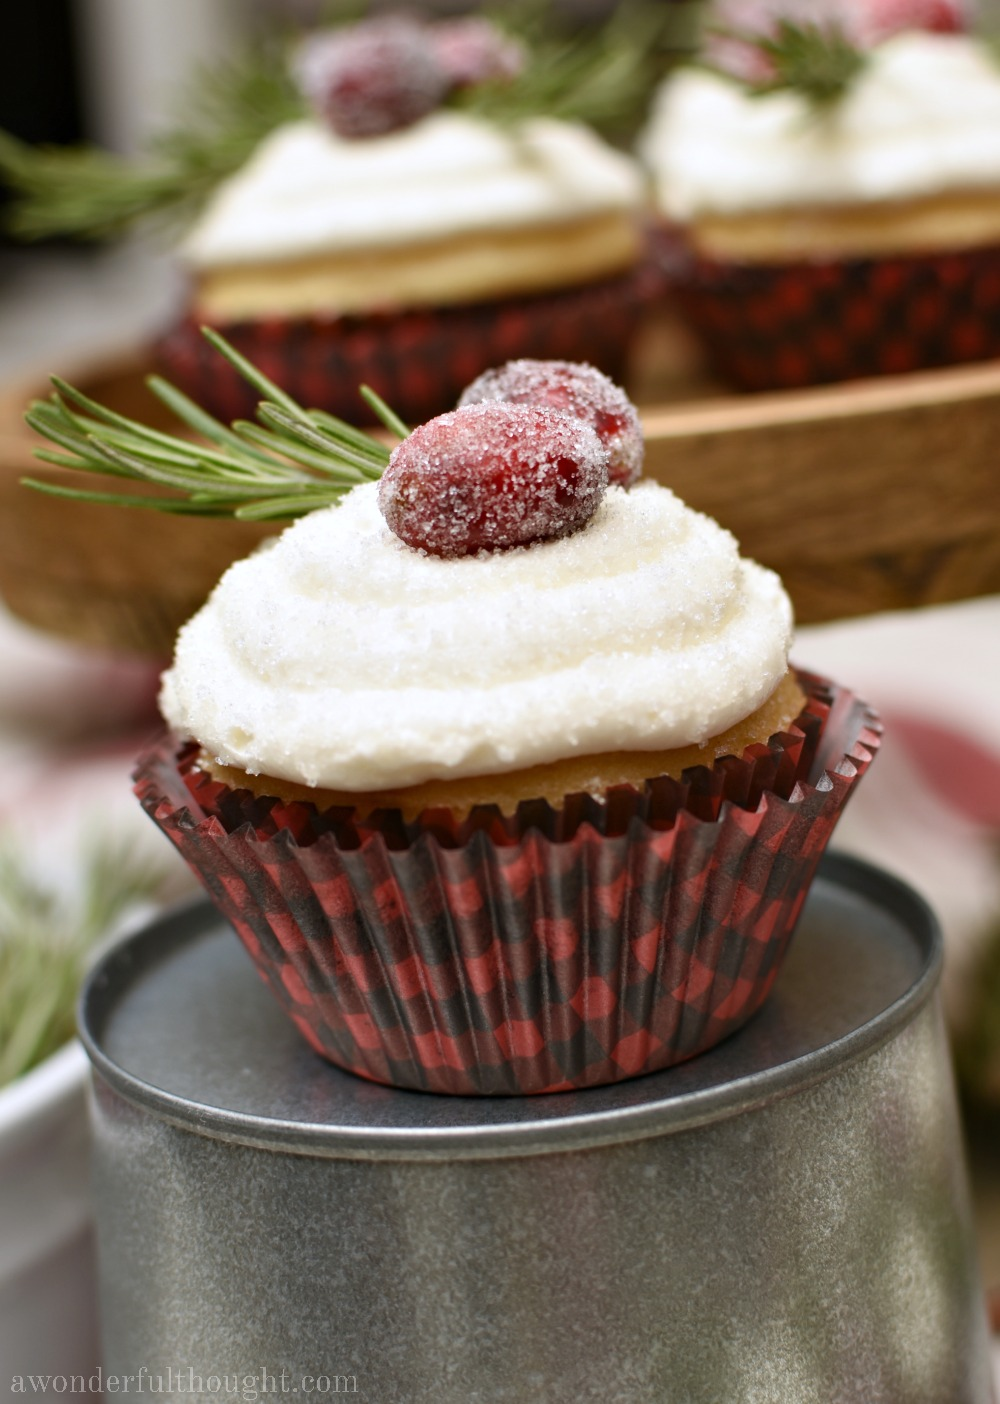 Sugared Cranberries and Rosemary Holly Cupcakes #cupcakerecipe #Christmasrecipe #hollycupcakes #awonderfulthought